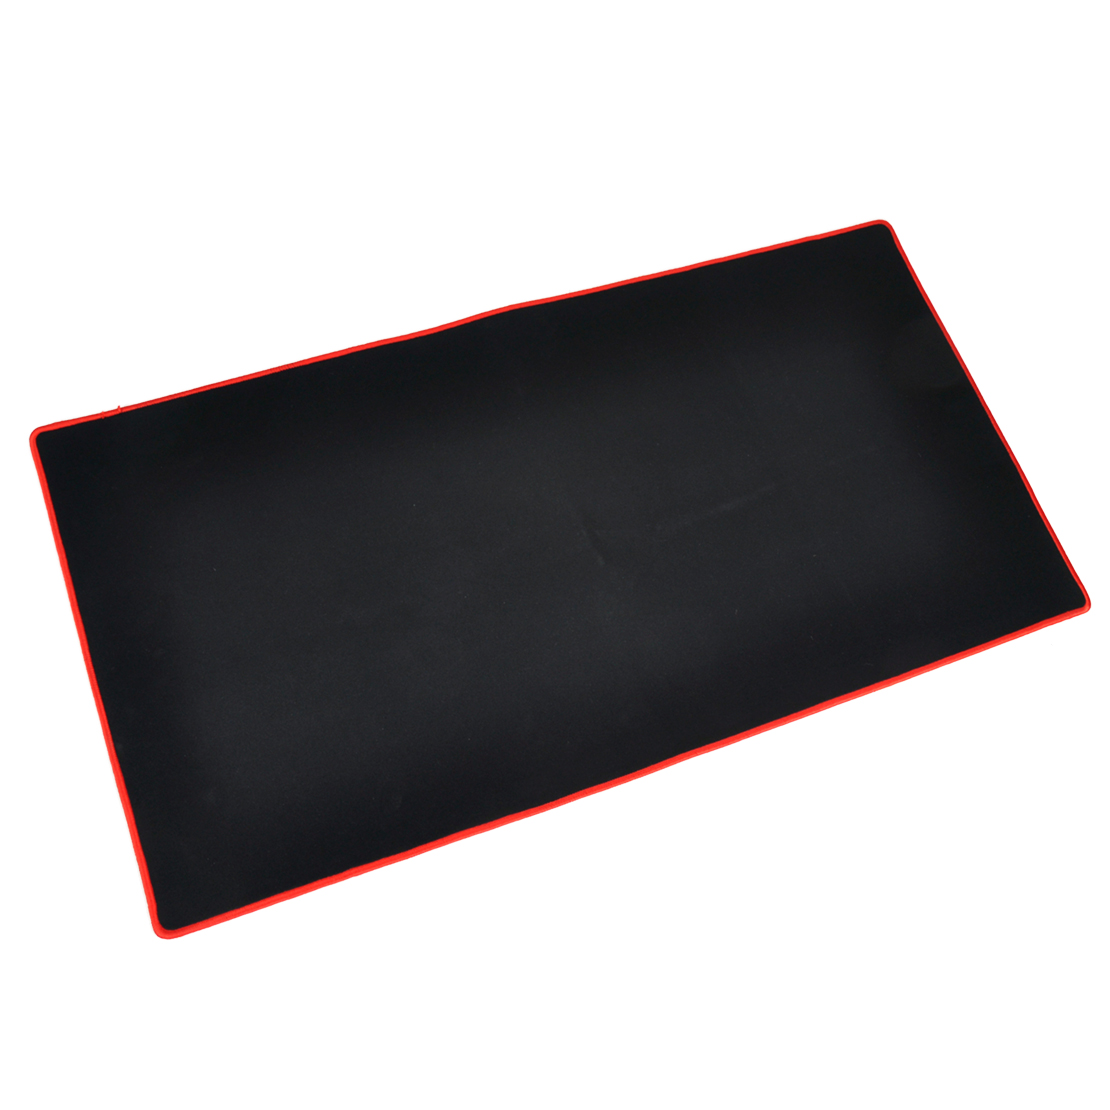 Rubber mats at home depot - Does Not Apply